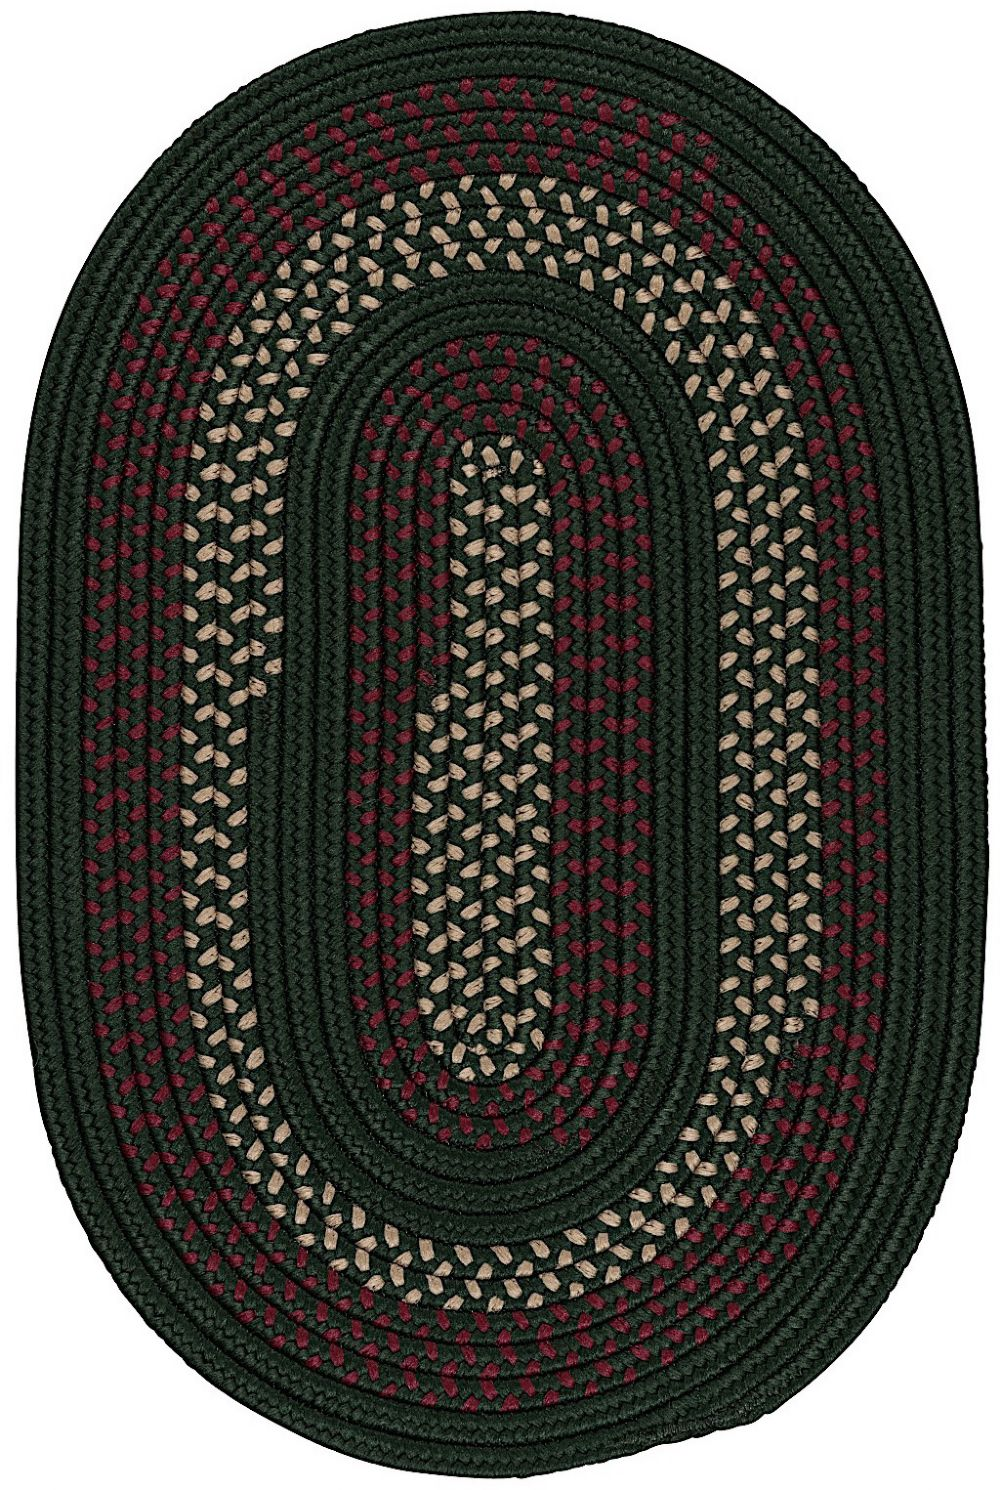 colonial mills deerfield braided area rug collection